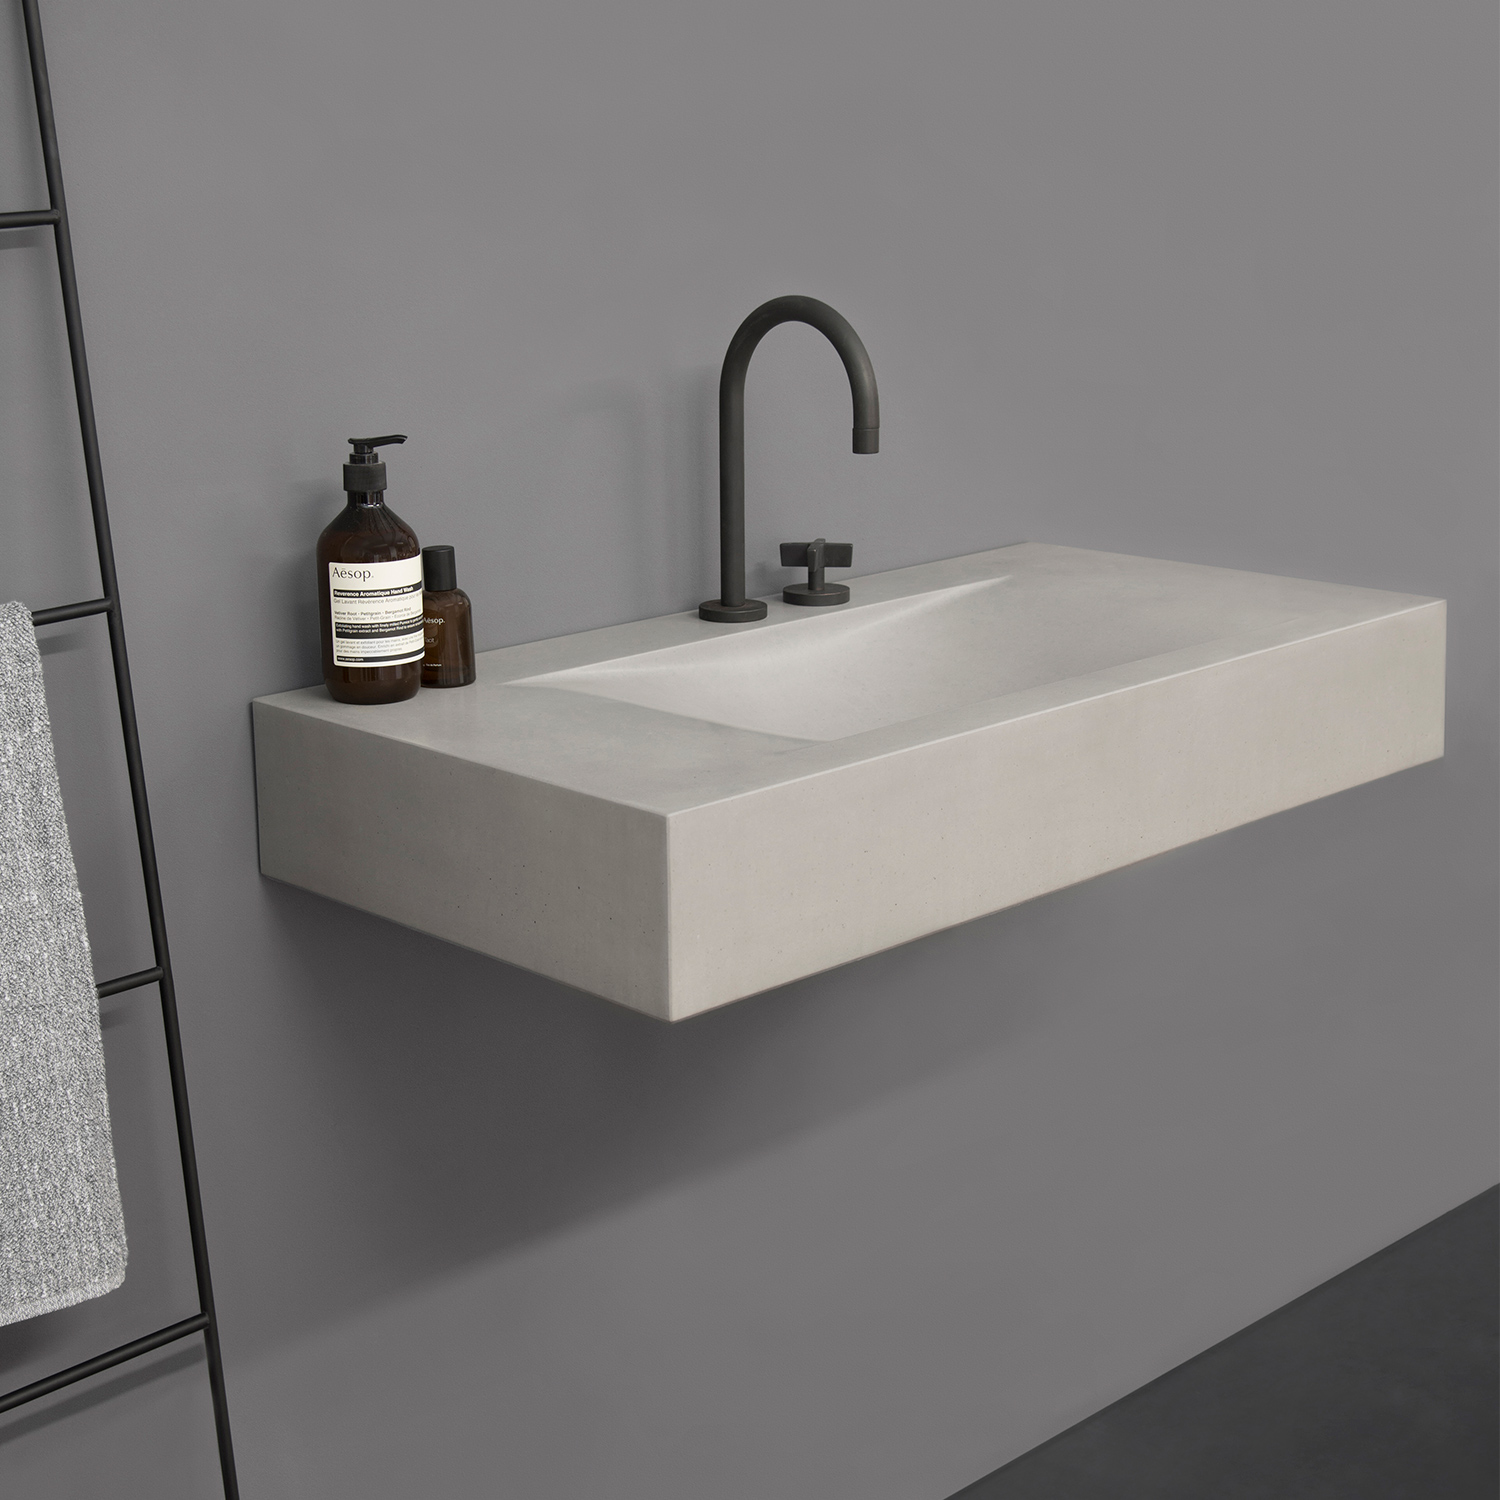 concrete hand basin and black metal mixer tap